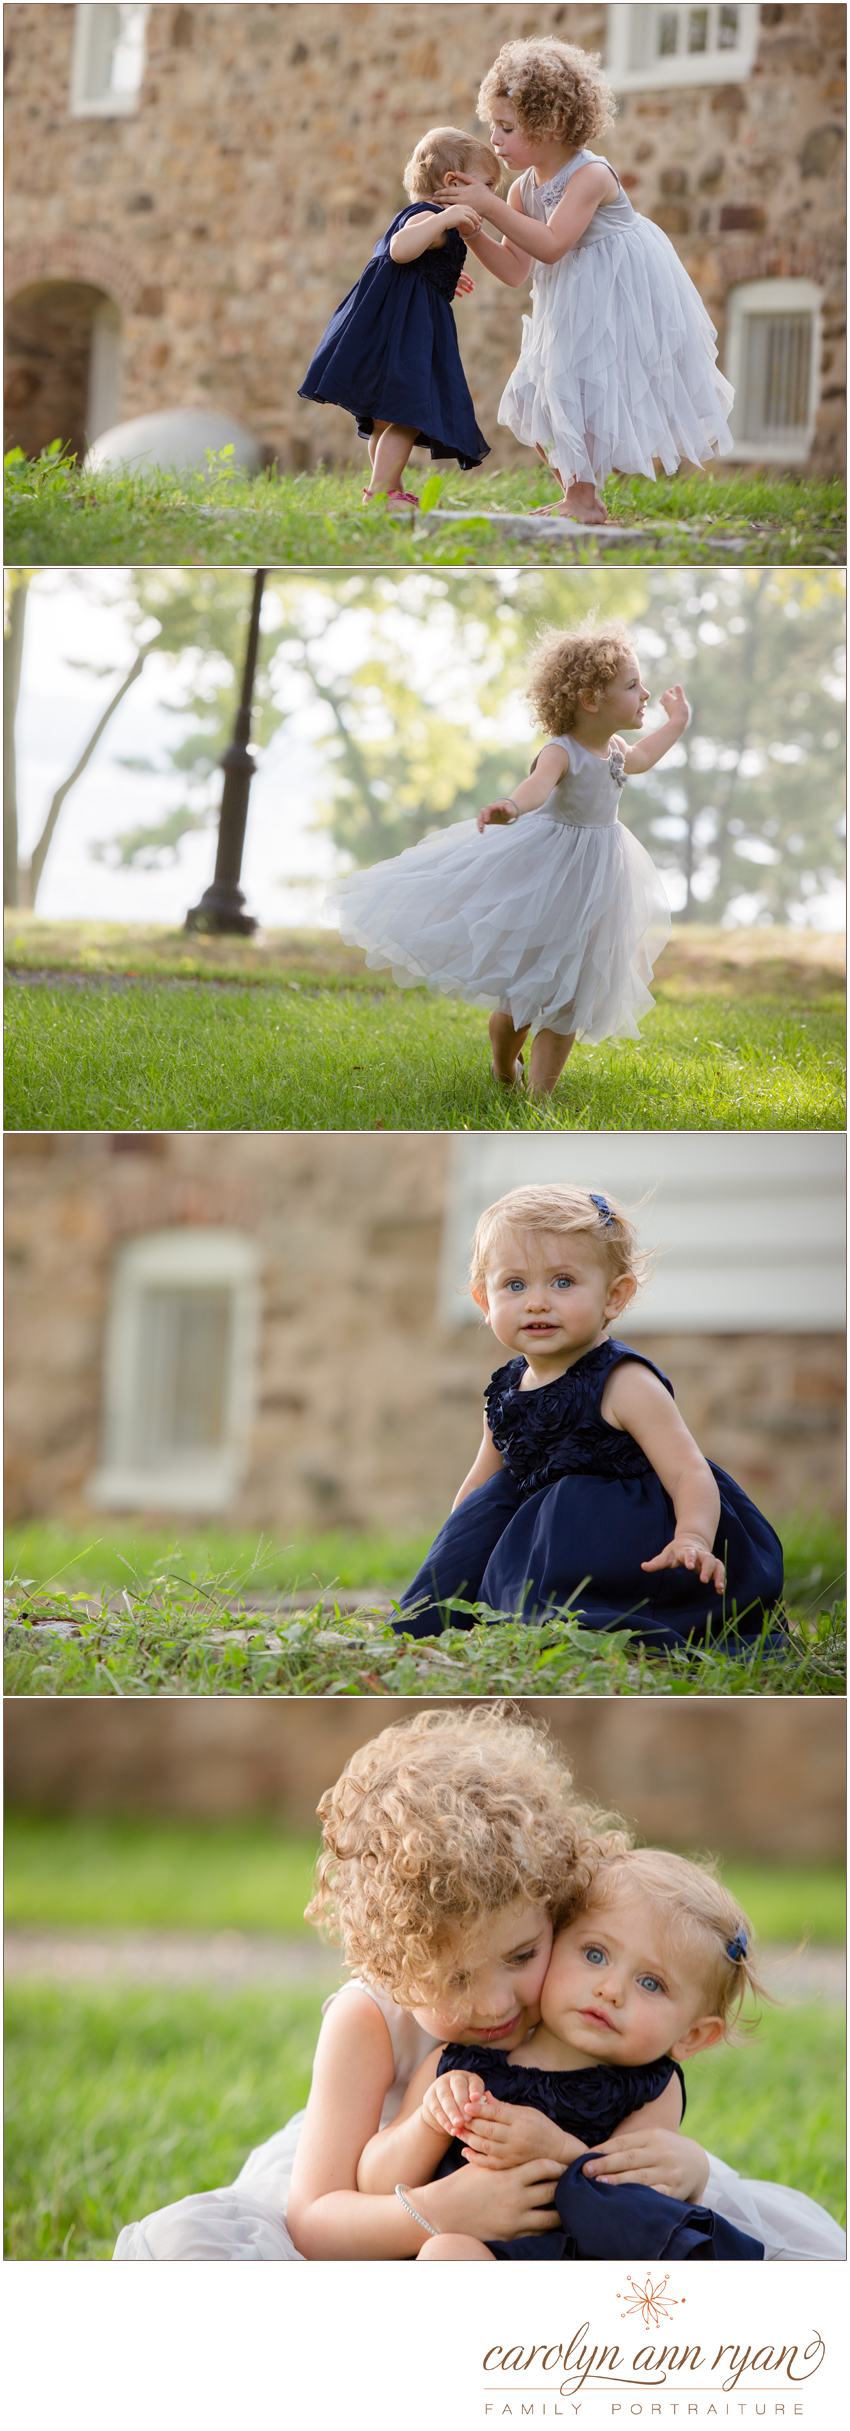 North Carolina Child Portrait Session by Carolyn Ann Ryan